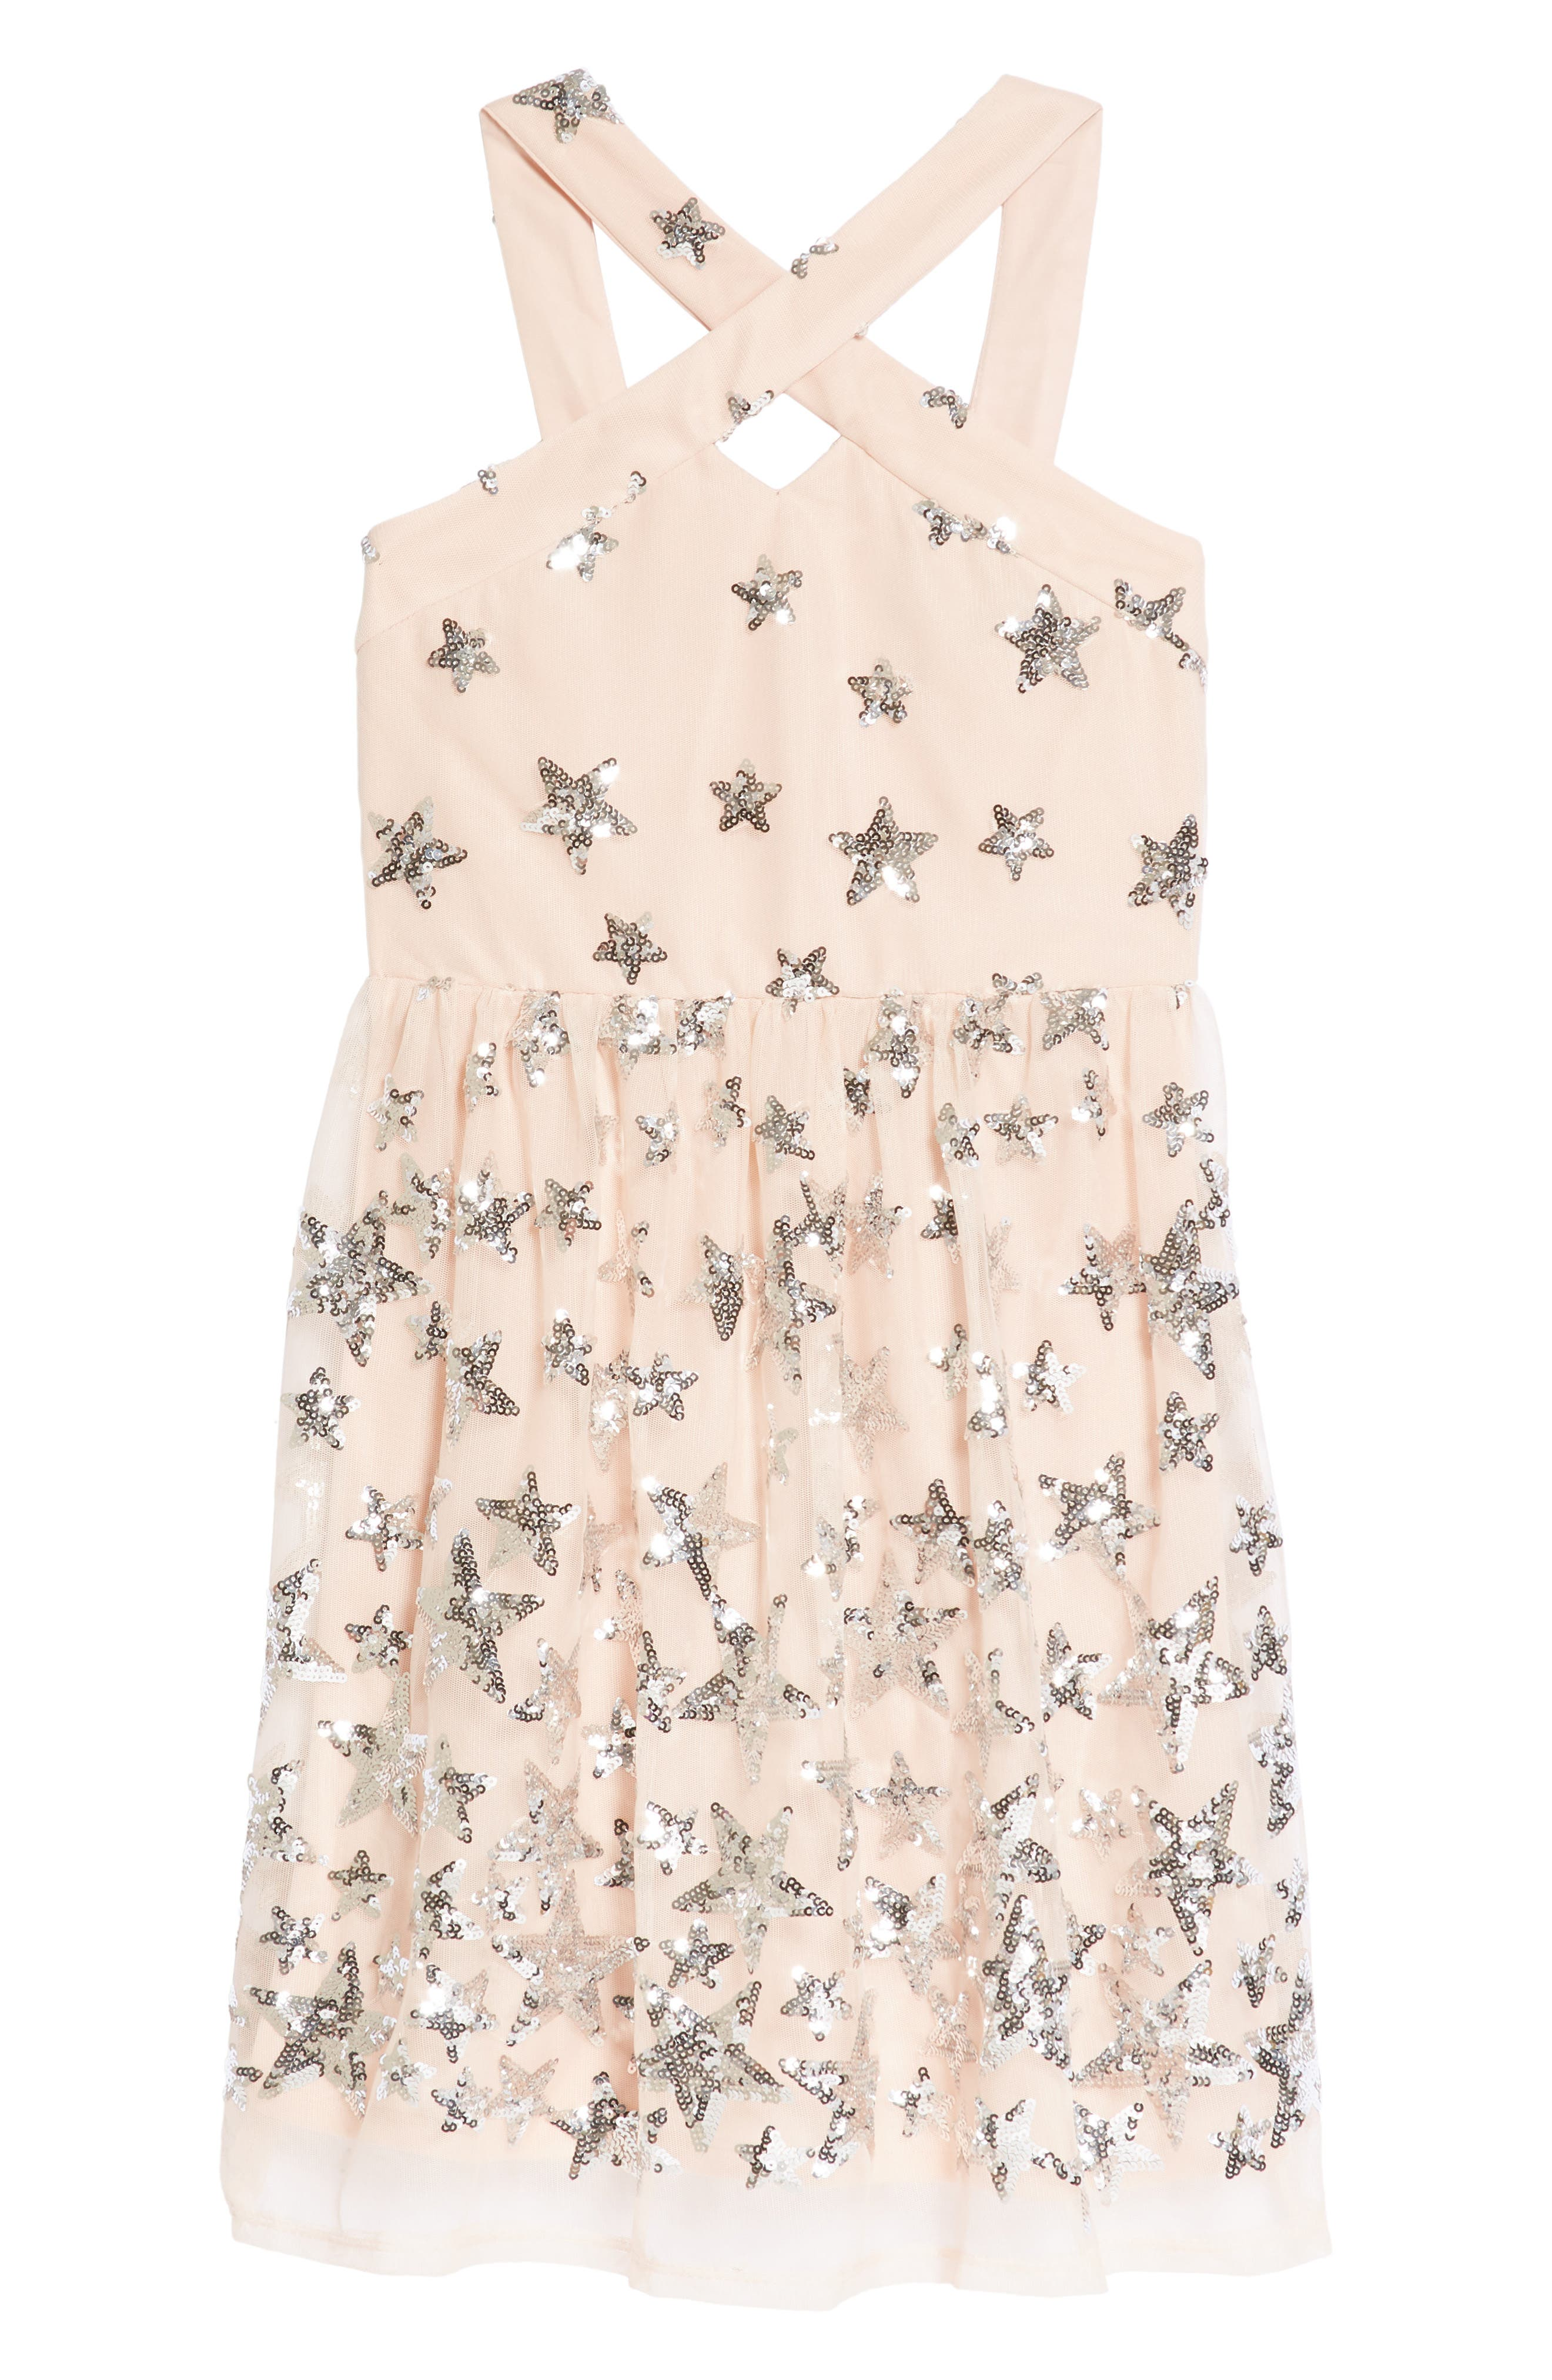 Sequin Embellished Star Party Dress,                             Main thumbnail 1, color,                             Blush